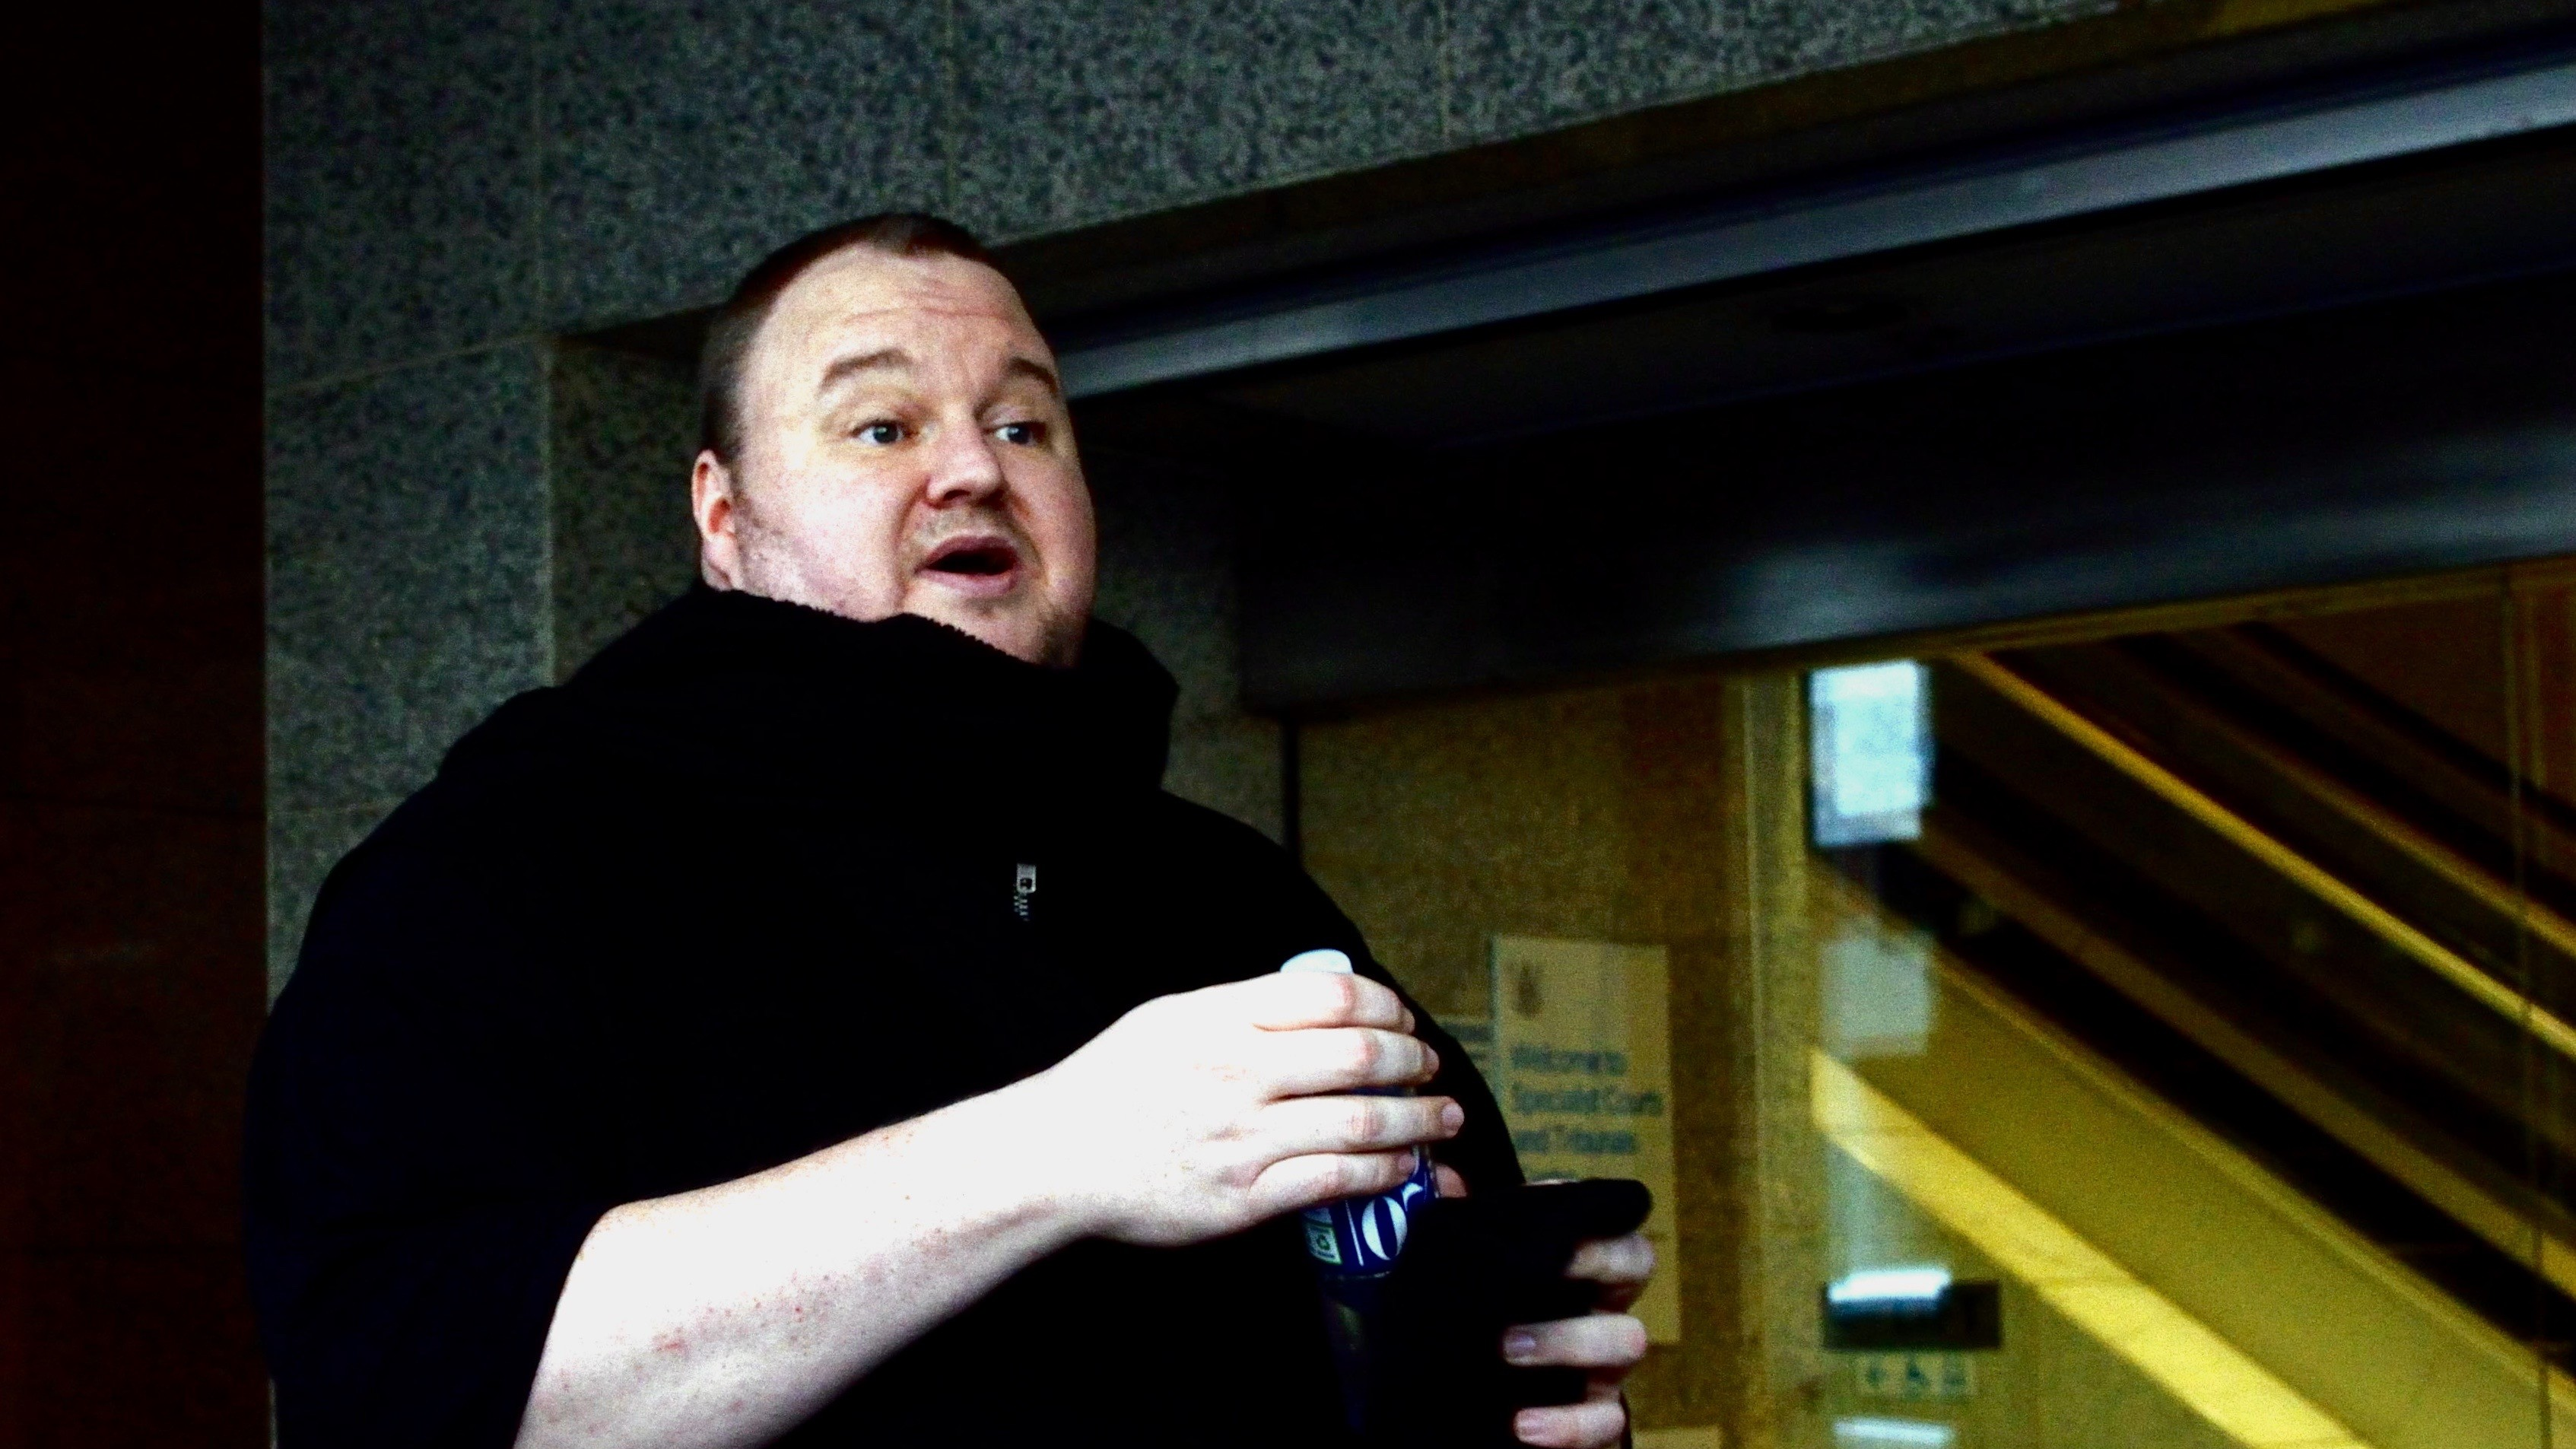 Kim Dotcom Says US Withheld Vital Information at His Extradition Hearing